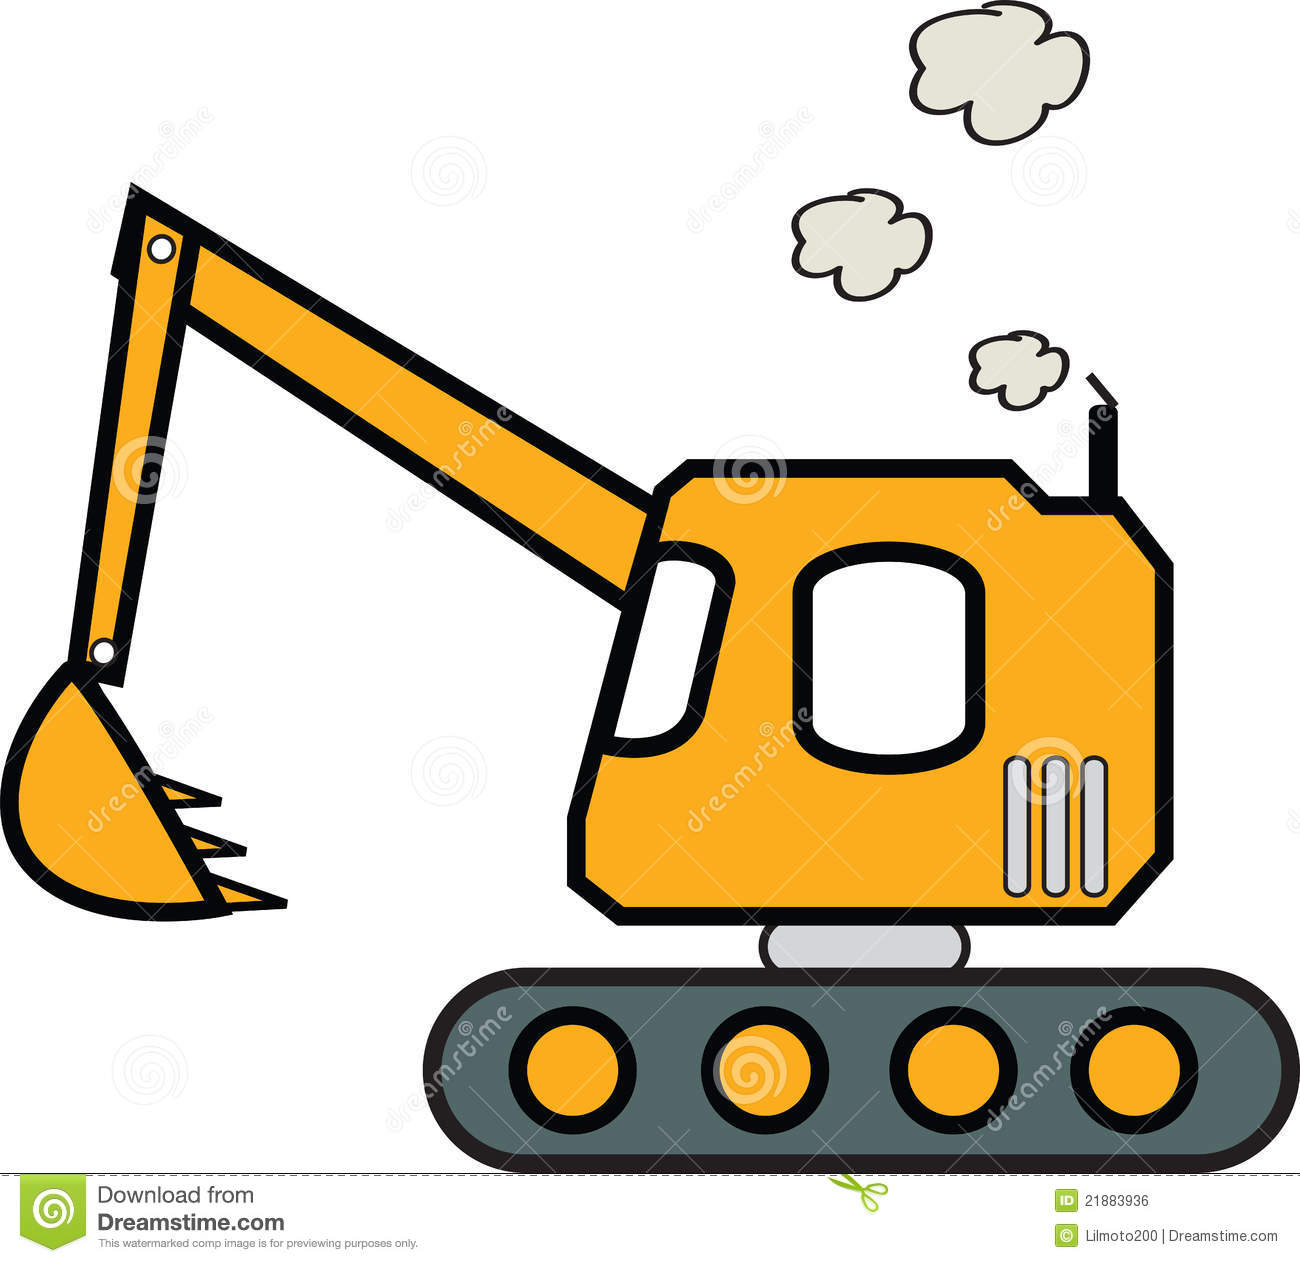 Caterpillar Excavator Stock Illustrations – 234 Caterpillar ...